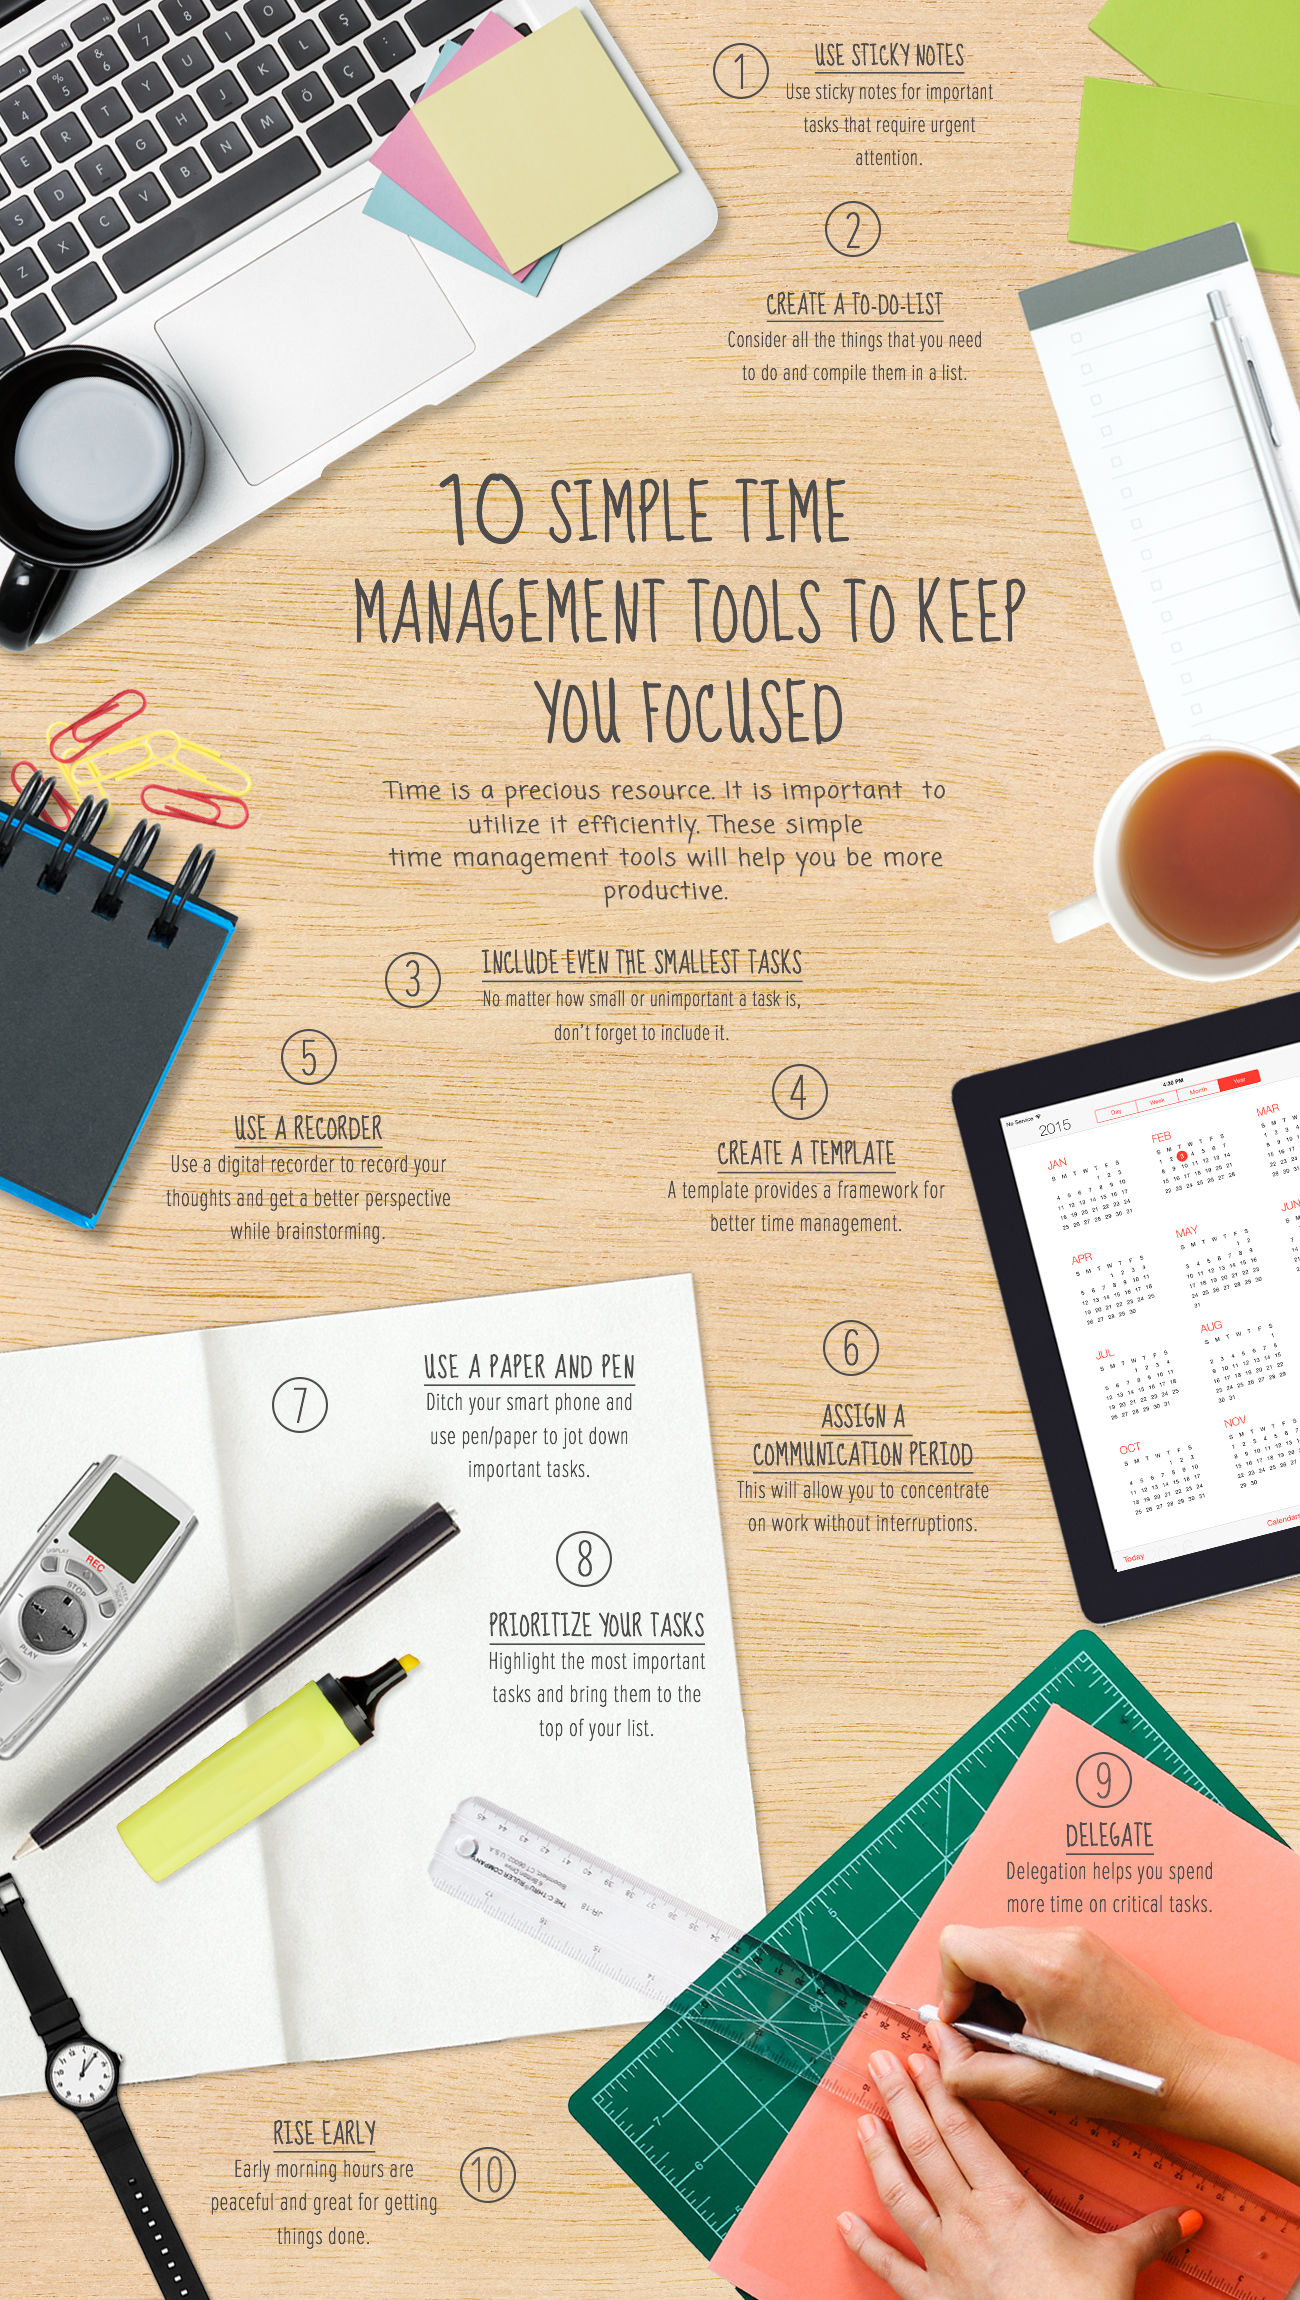 10 SIMPLE TIME MANAGEMENT TOOLS